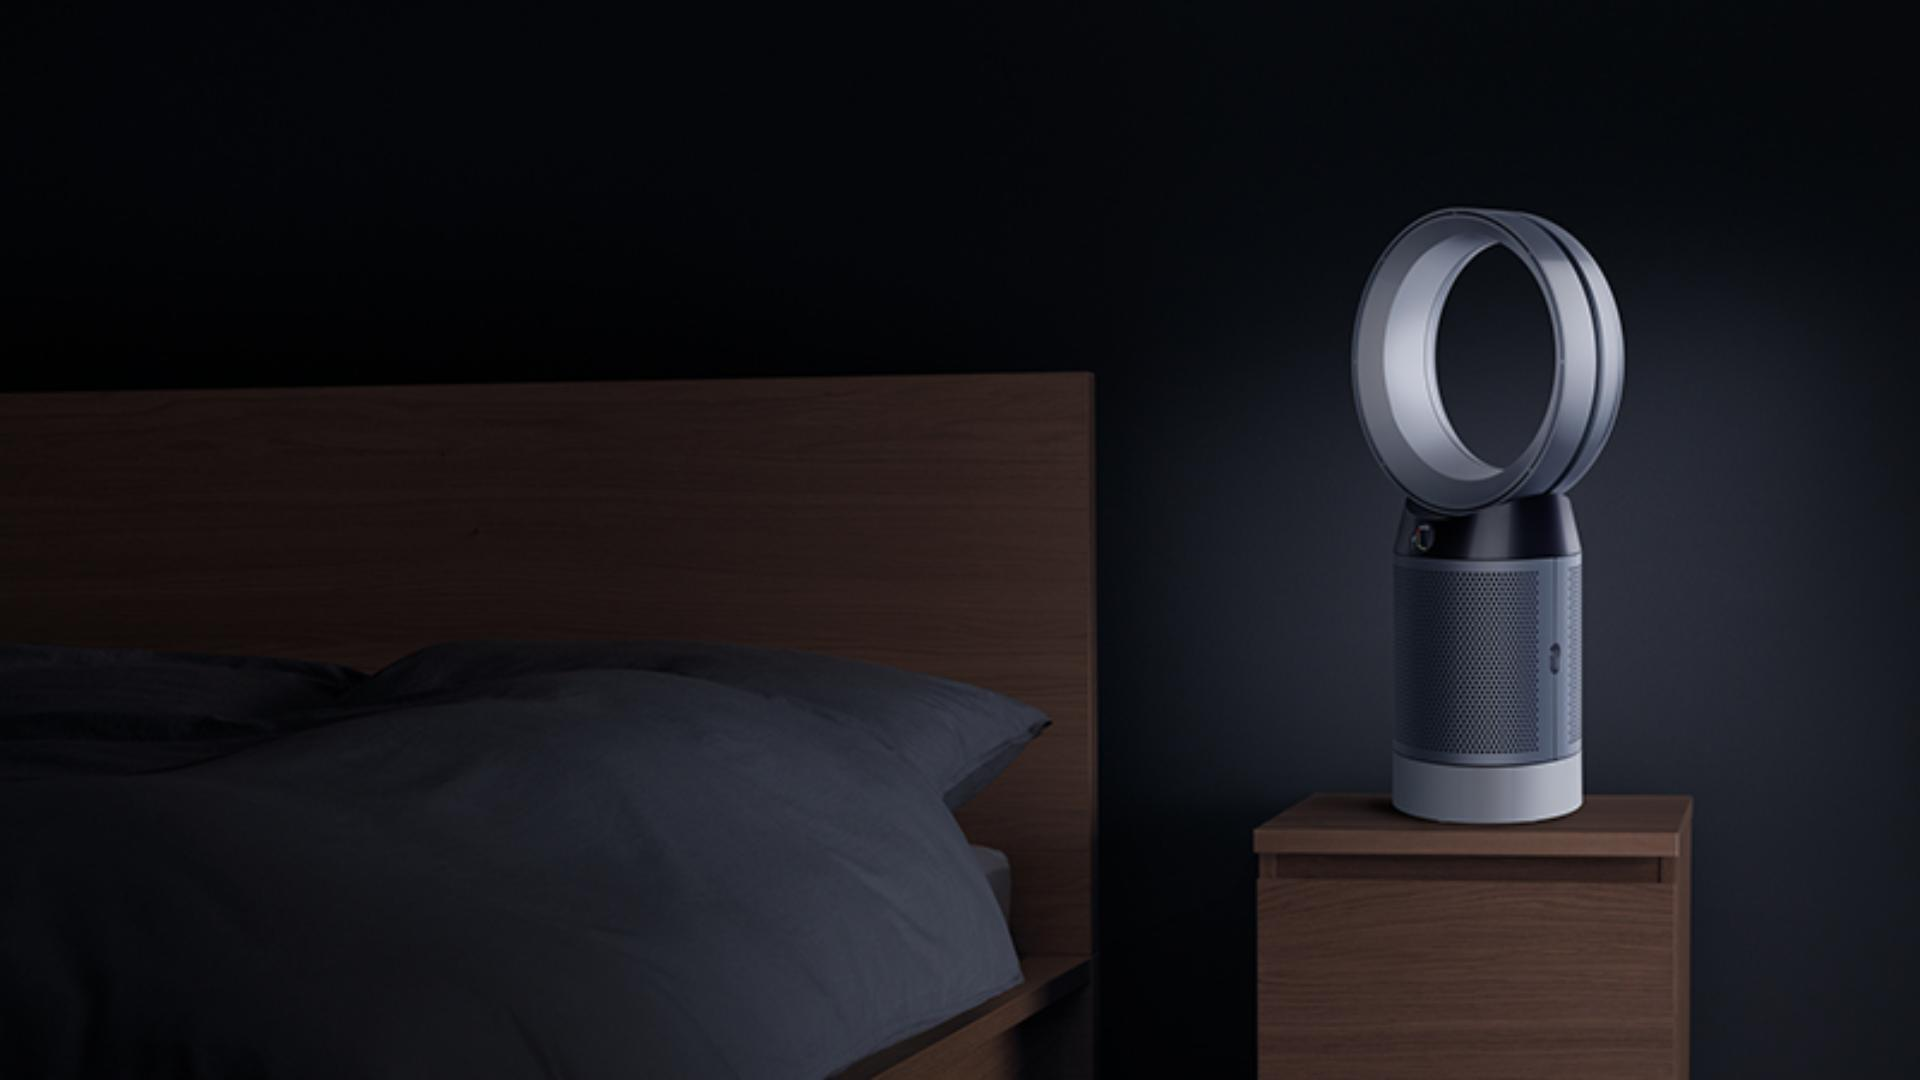 Desk purifier beside bed at night